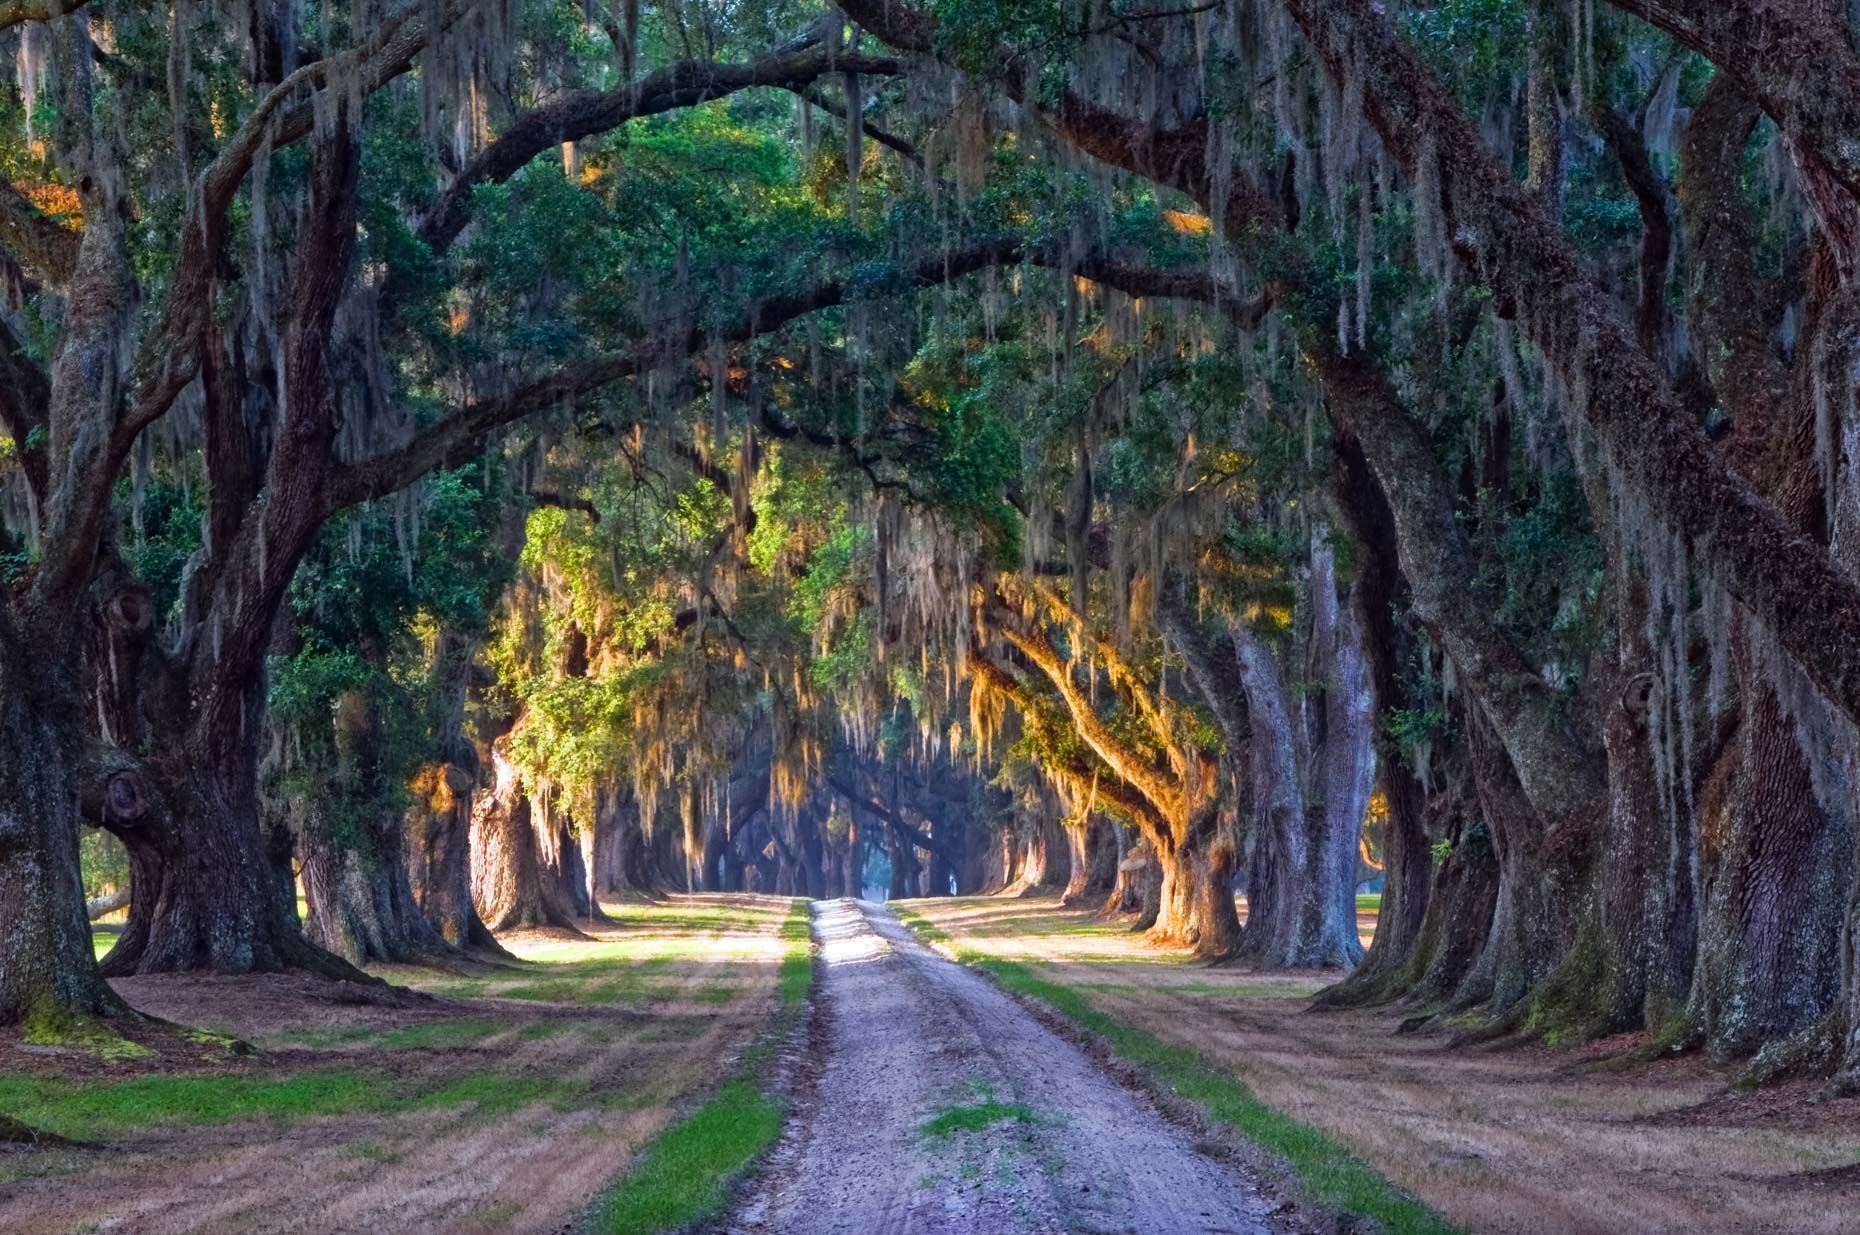 Dirt Road Under Live Oak Trees - Yemassee, South Carolina